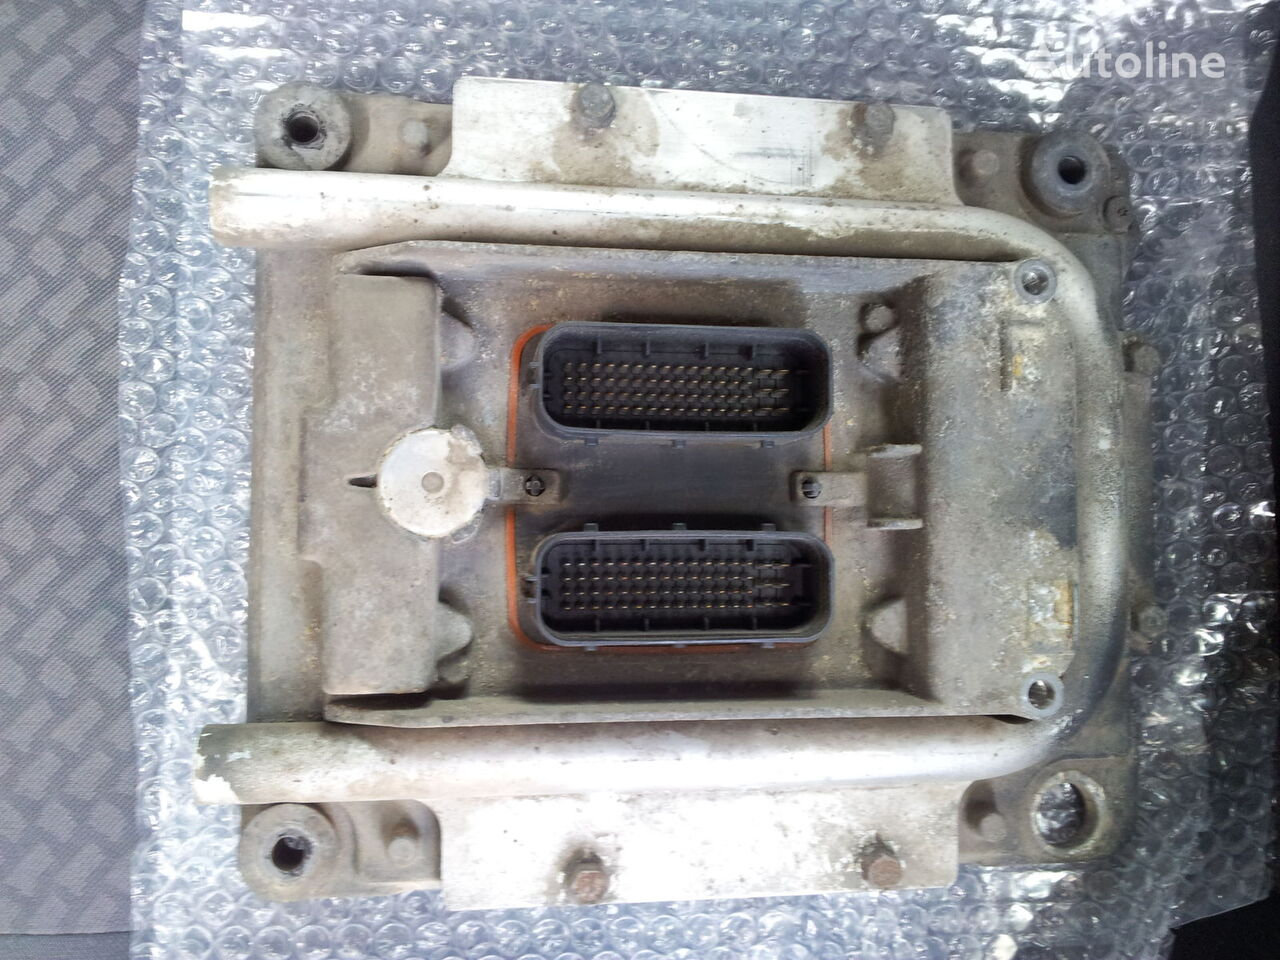 блок управления  Renault VOLVO FH13, ECU control unit, 440PS, engine control unit, 20561252 P02, 20814604, 20977019, 21300122, 85123379, 85111591, 85110111, 85000776, 85000847, 85003360 для тягача RENAULT Premium DXI